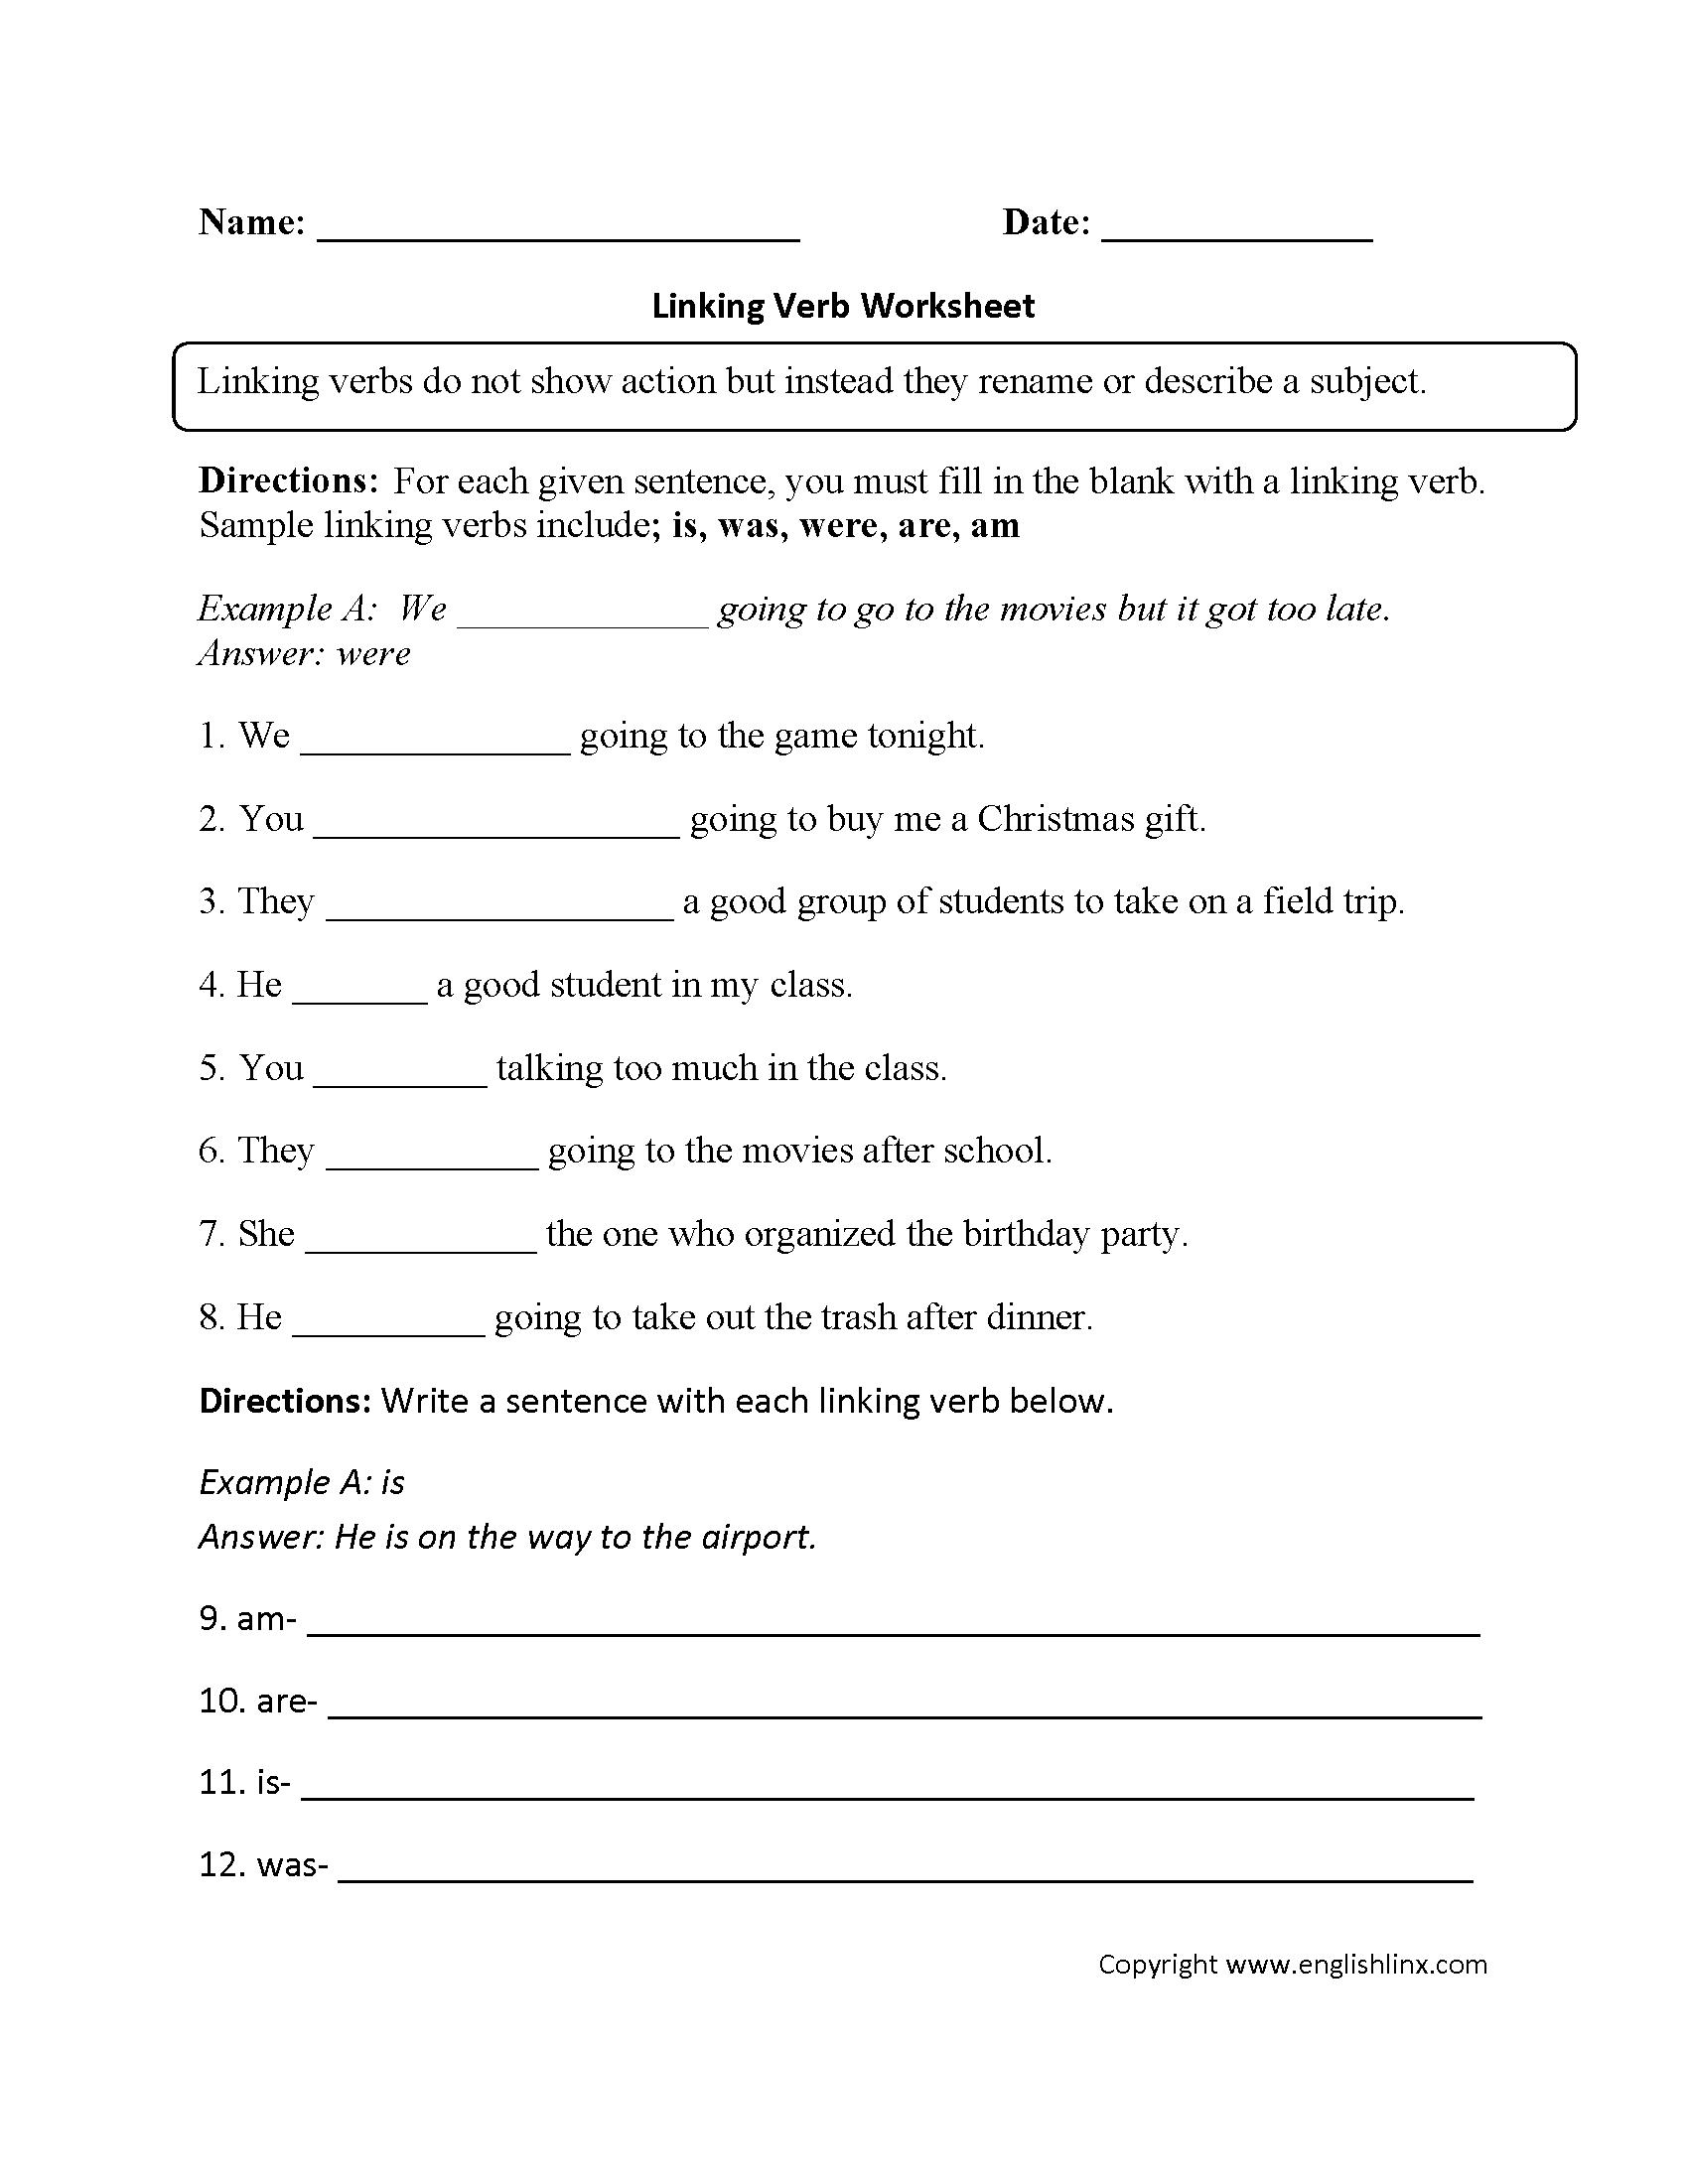 Worksheets Linking Verb Worksheets parts speech worksheets verb linking worksheet